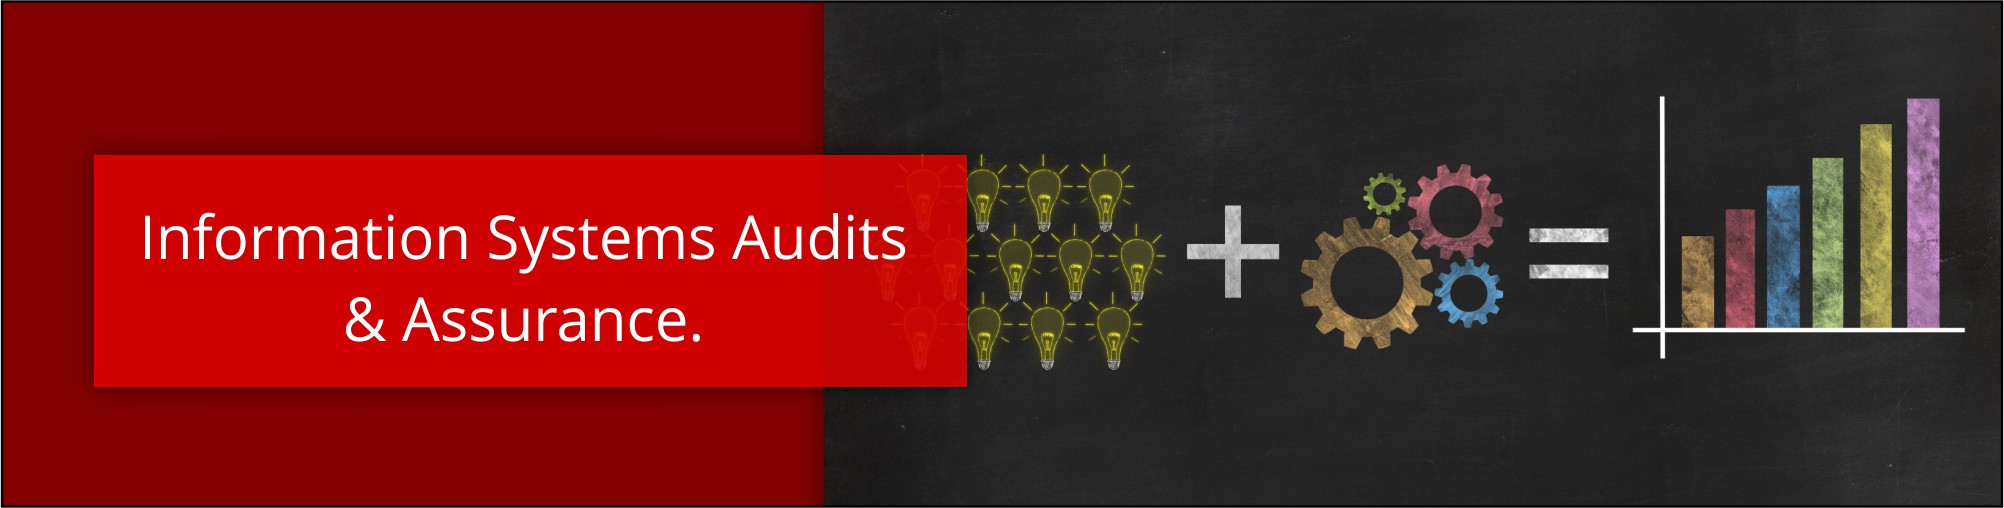 Information Systems Audits & Assurance.